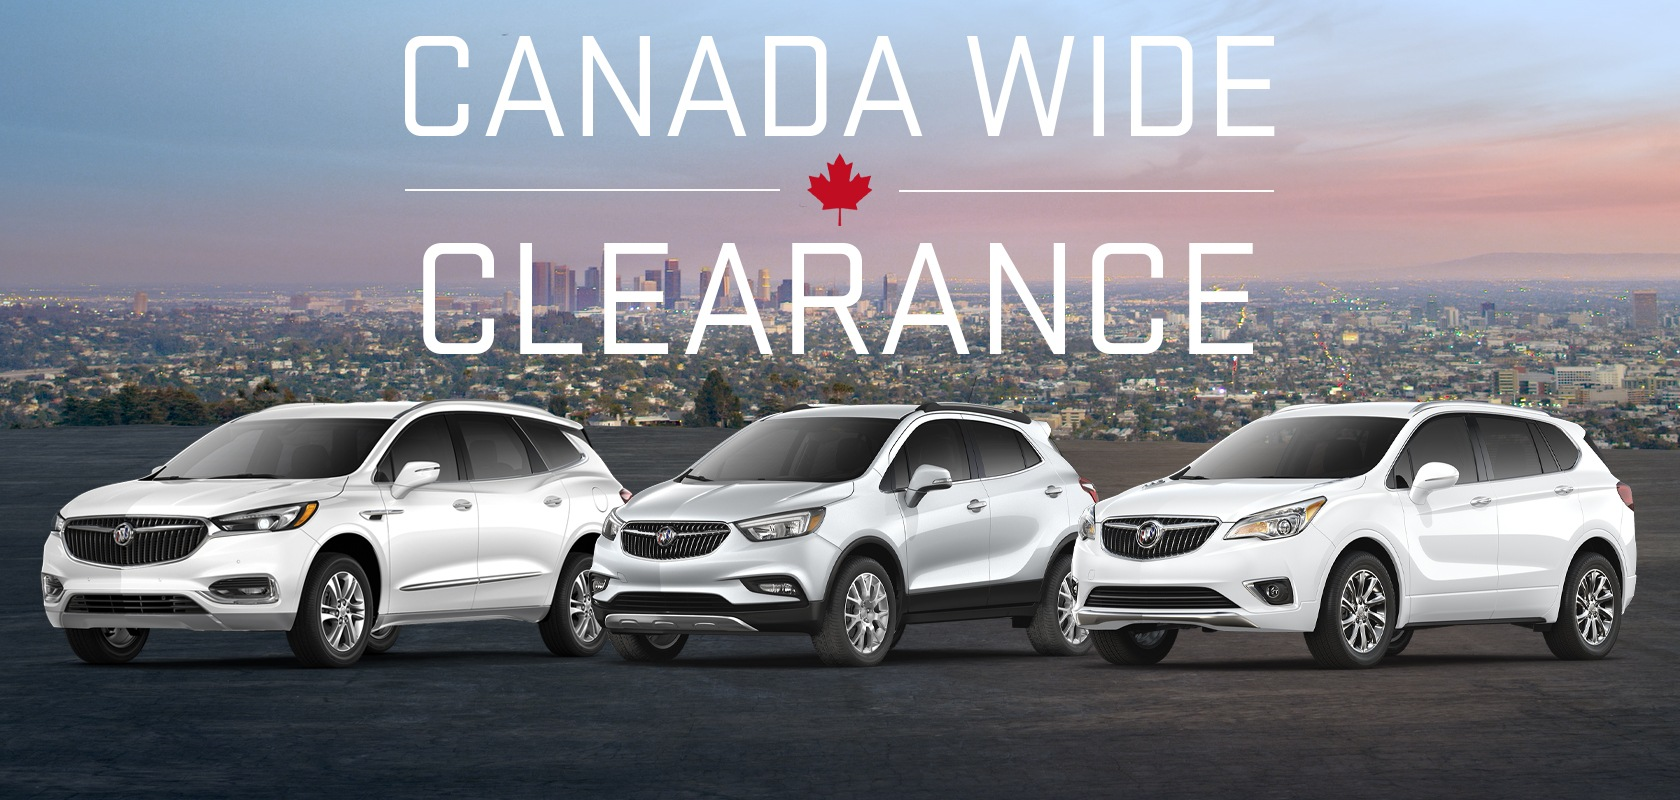 Canada Wide Clearance on Buick